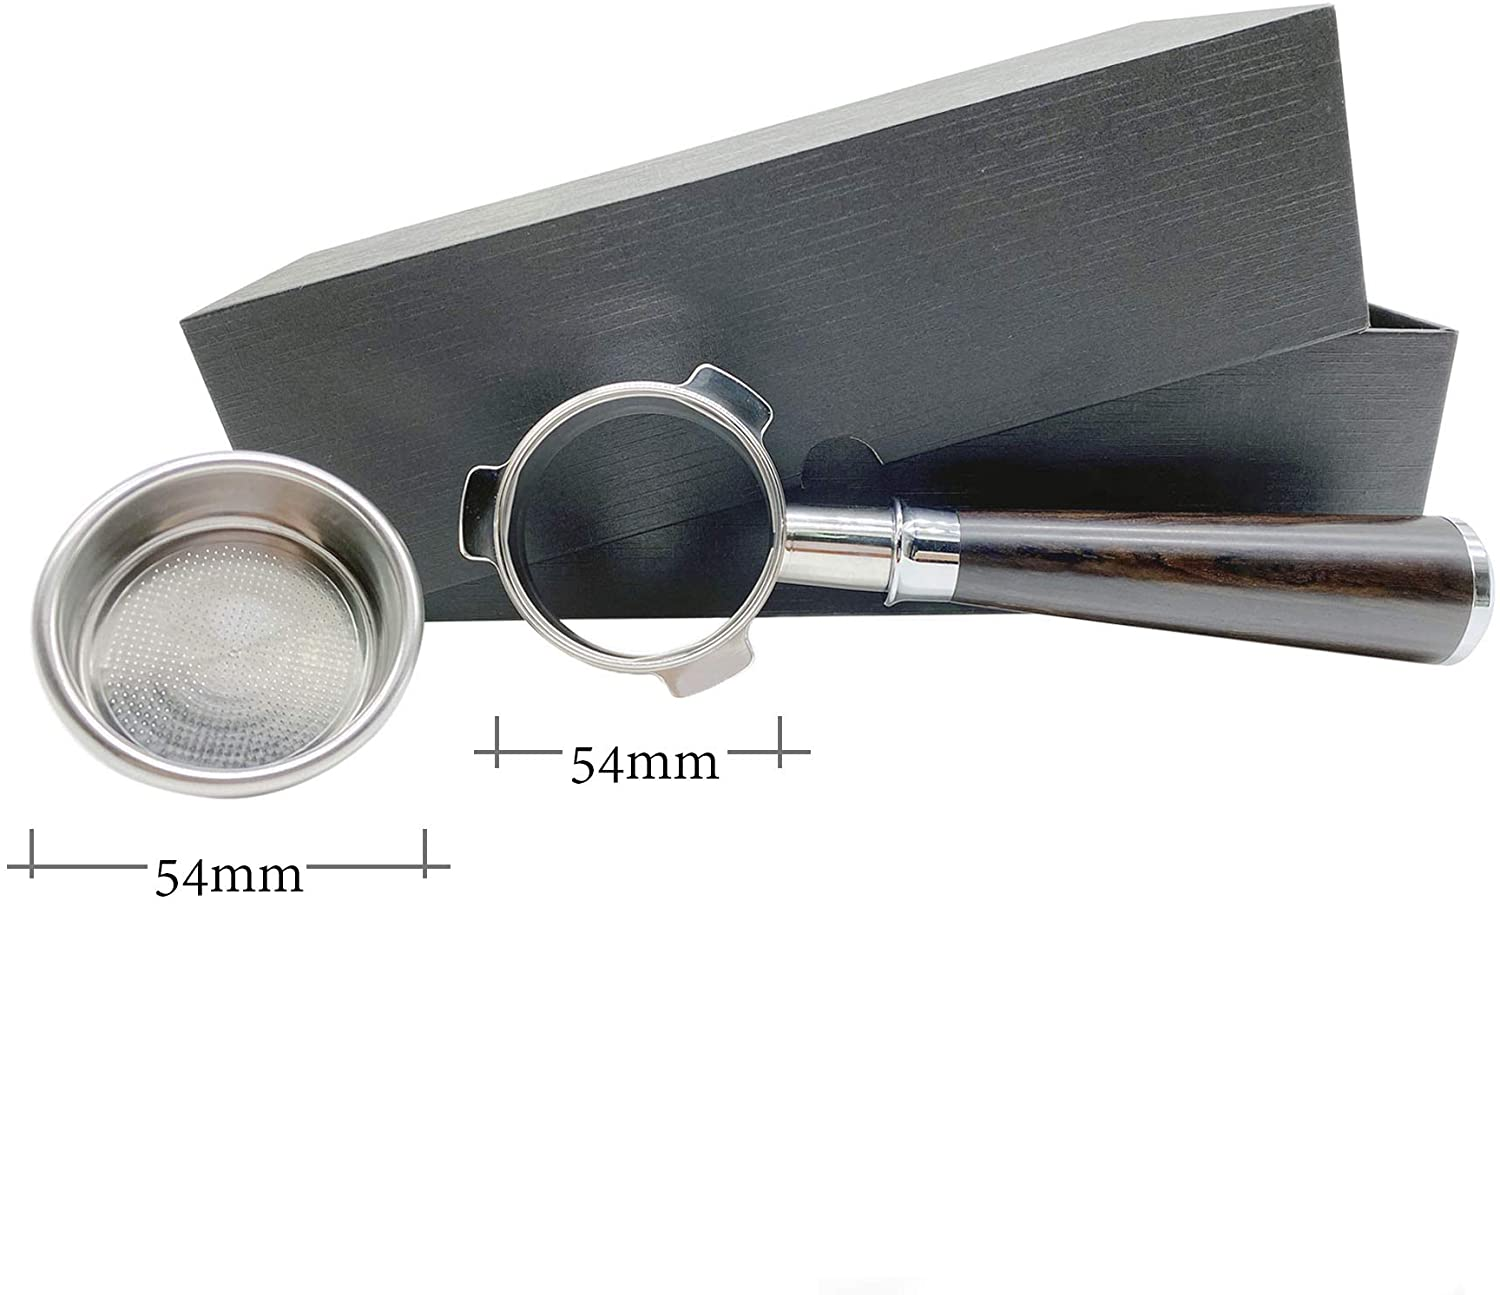 Espresso Coffee Portafilter three ear bottomless handle 54mm Filter Basket handle and 54mm Filter Basket for Breville 870/878/880/Barista Express/Barista Pro/Barista Touch and 54mm Breville Machines